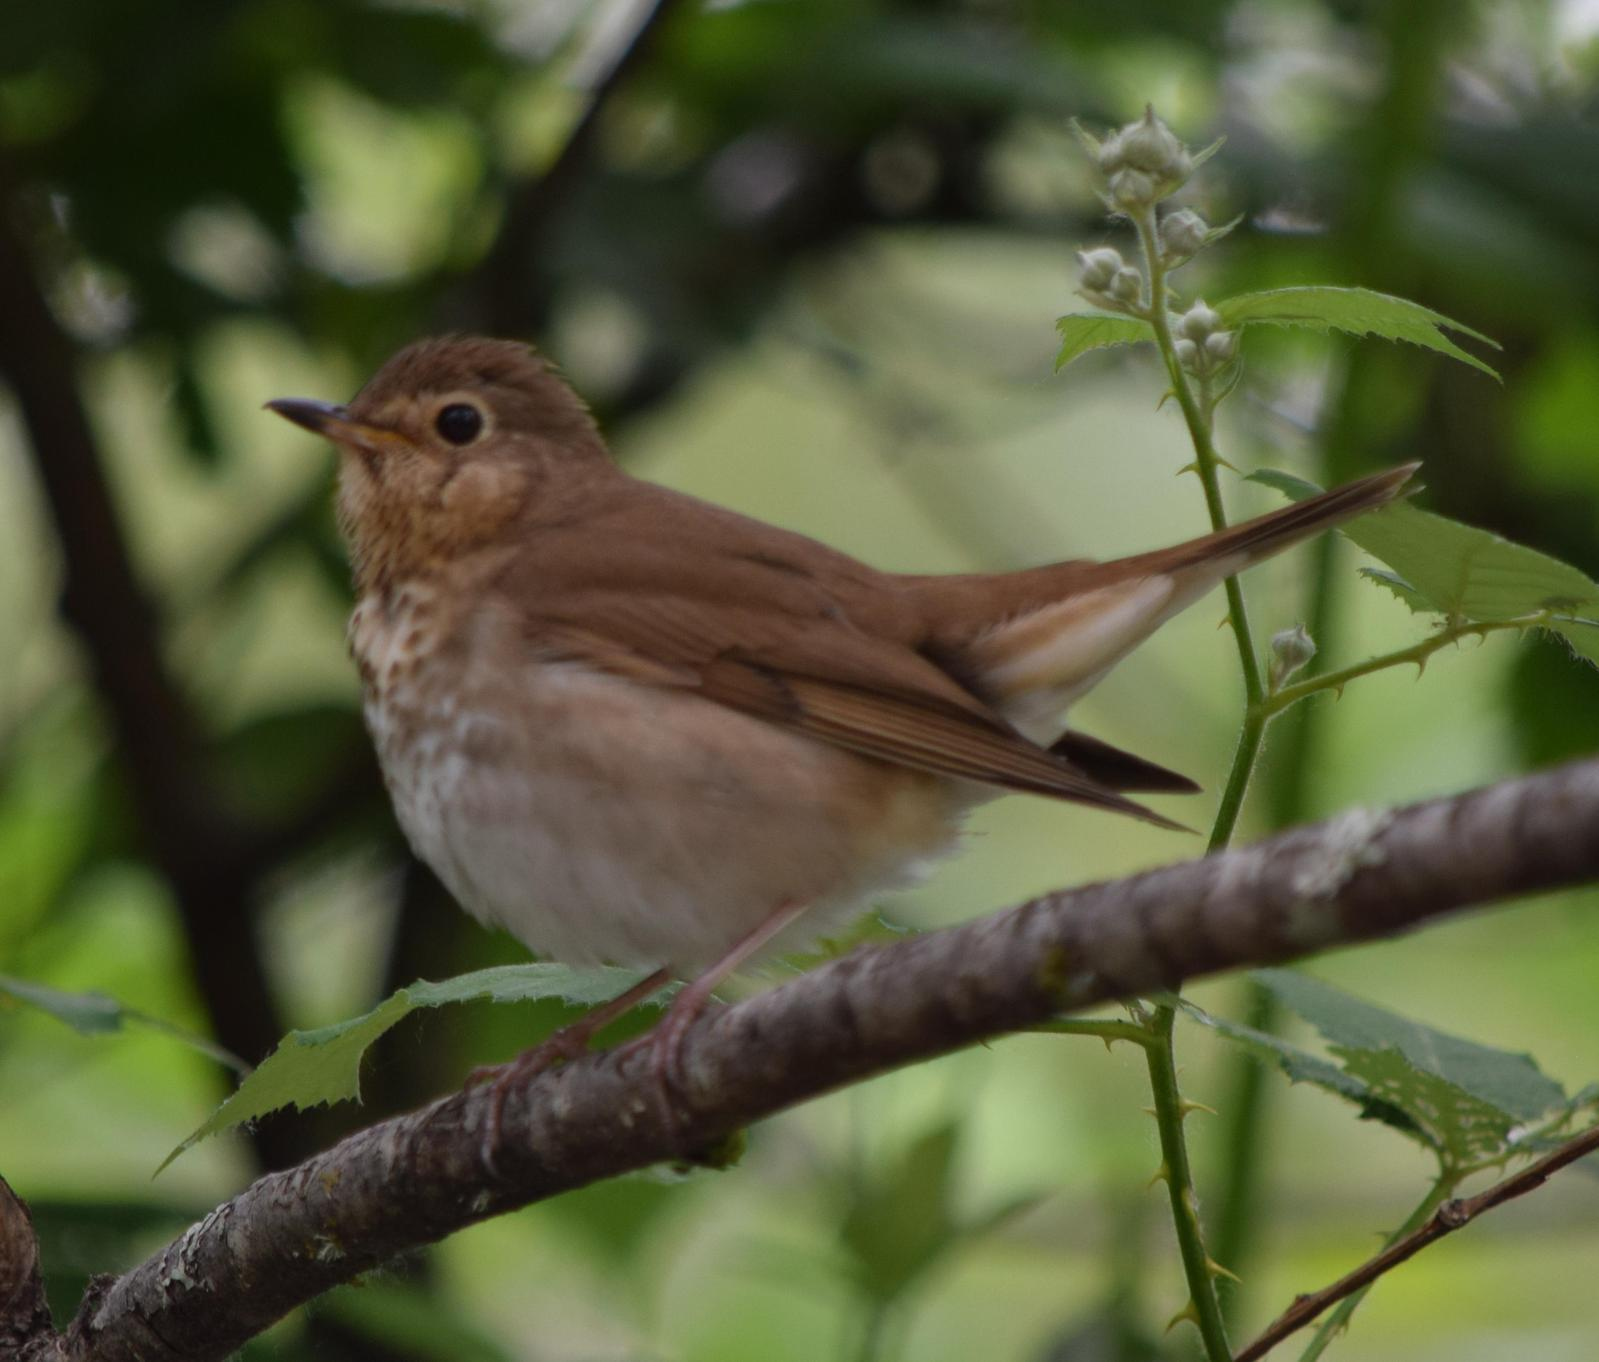 Swainson's Thrush Photo by Ken Shawcroft